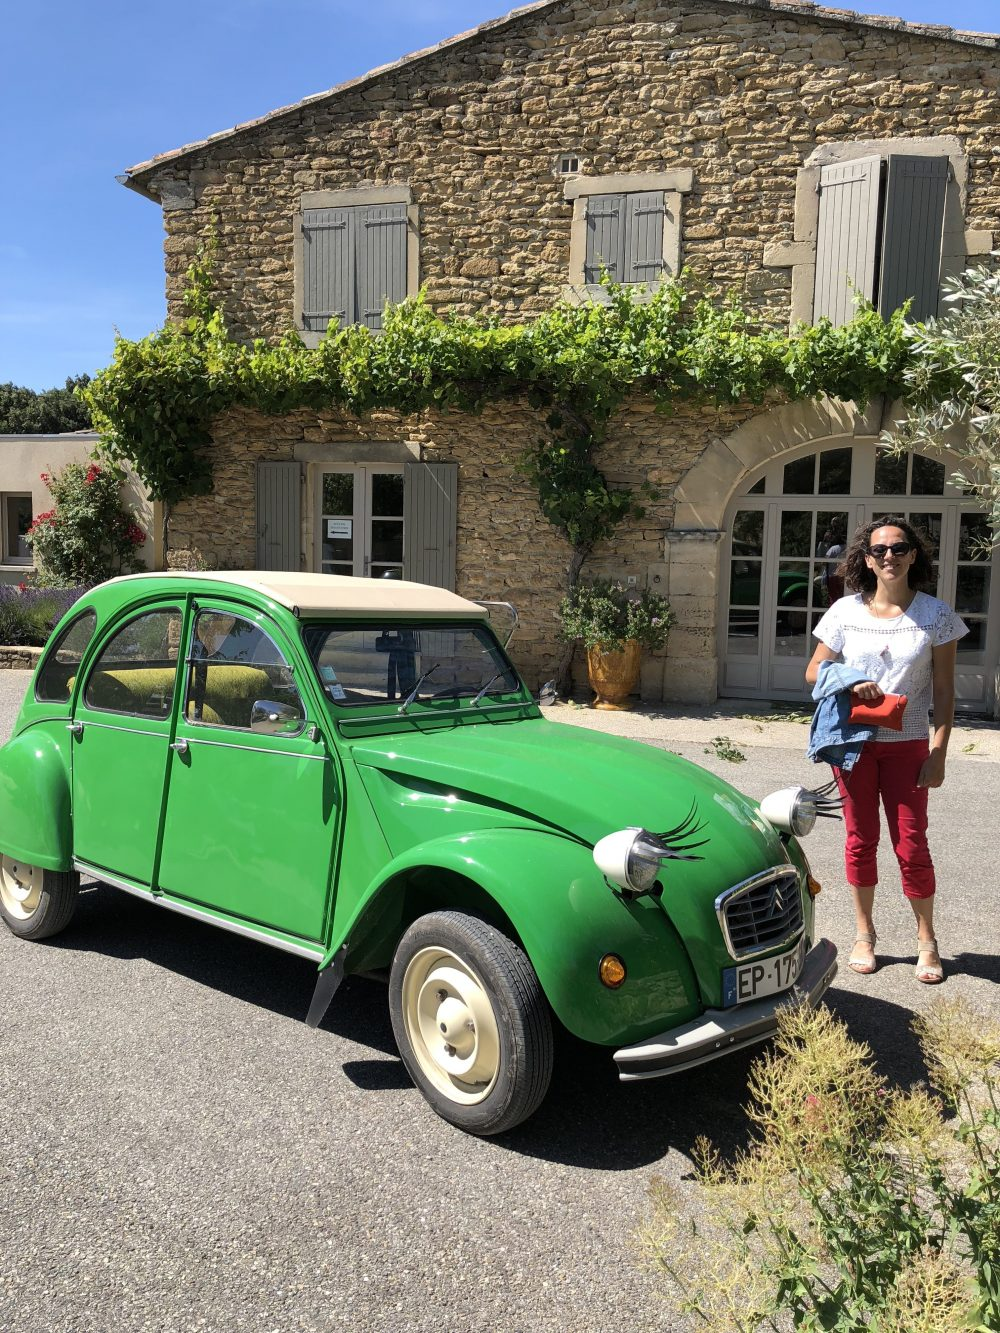 woman standing next to green car next to a stone house